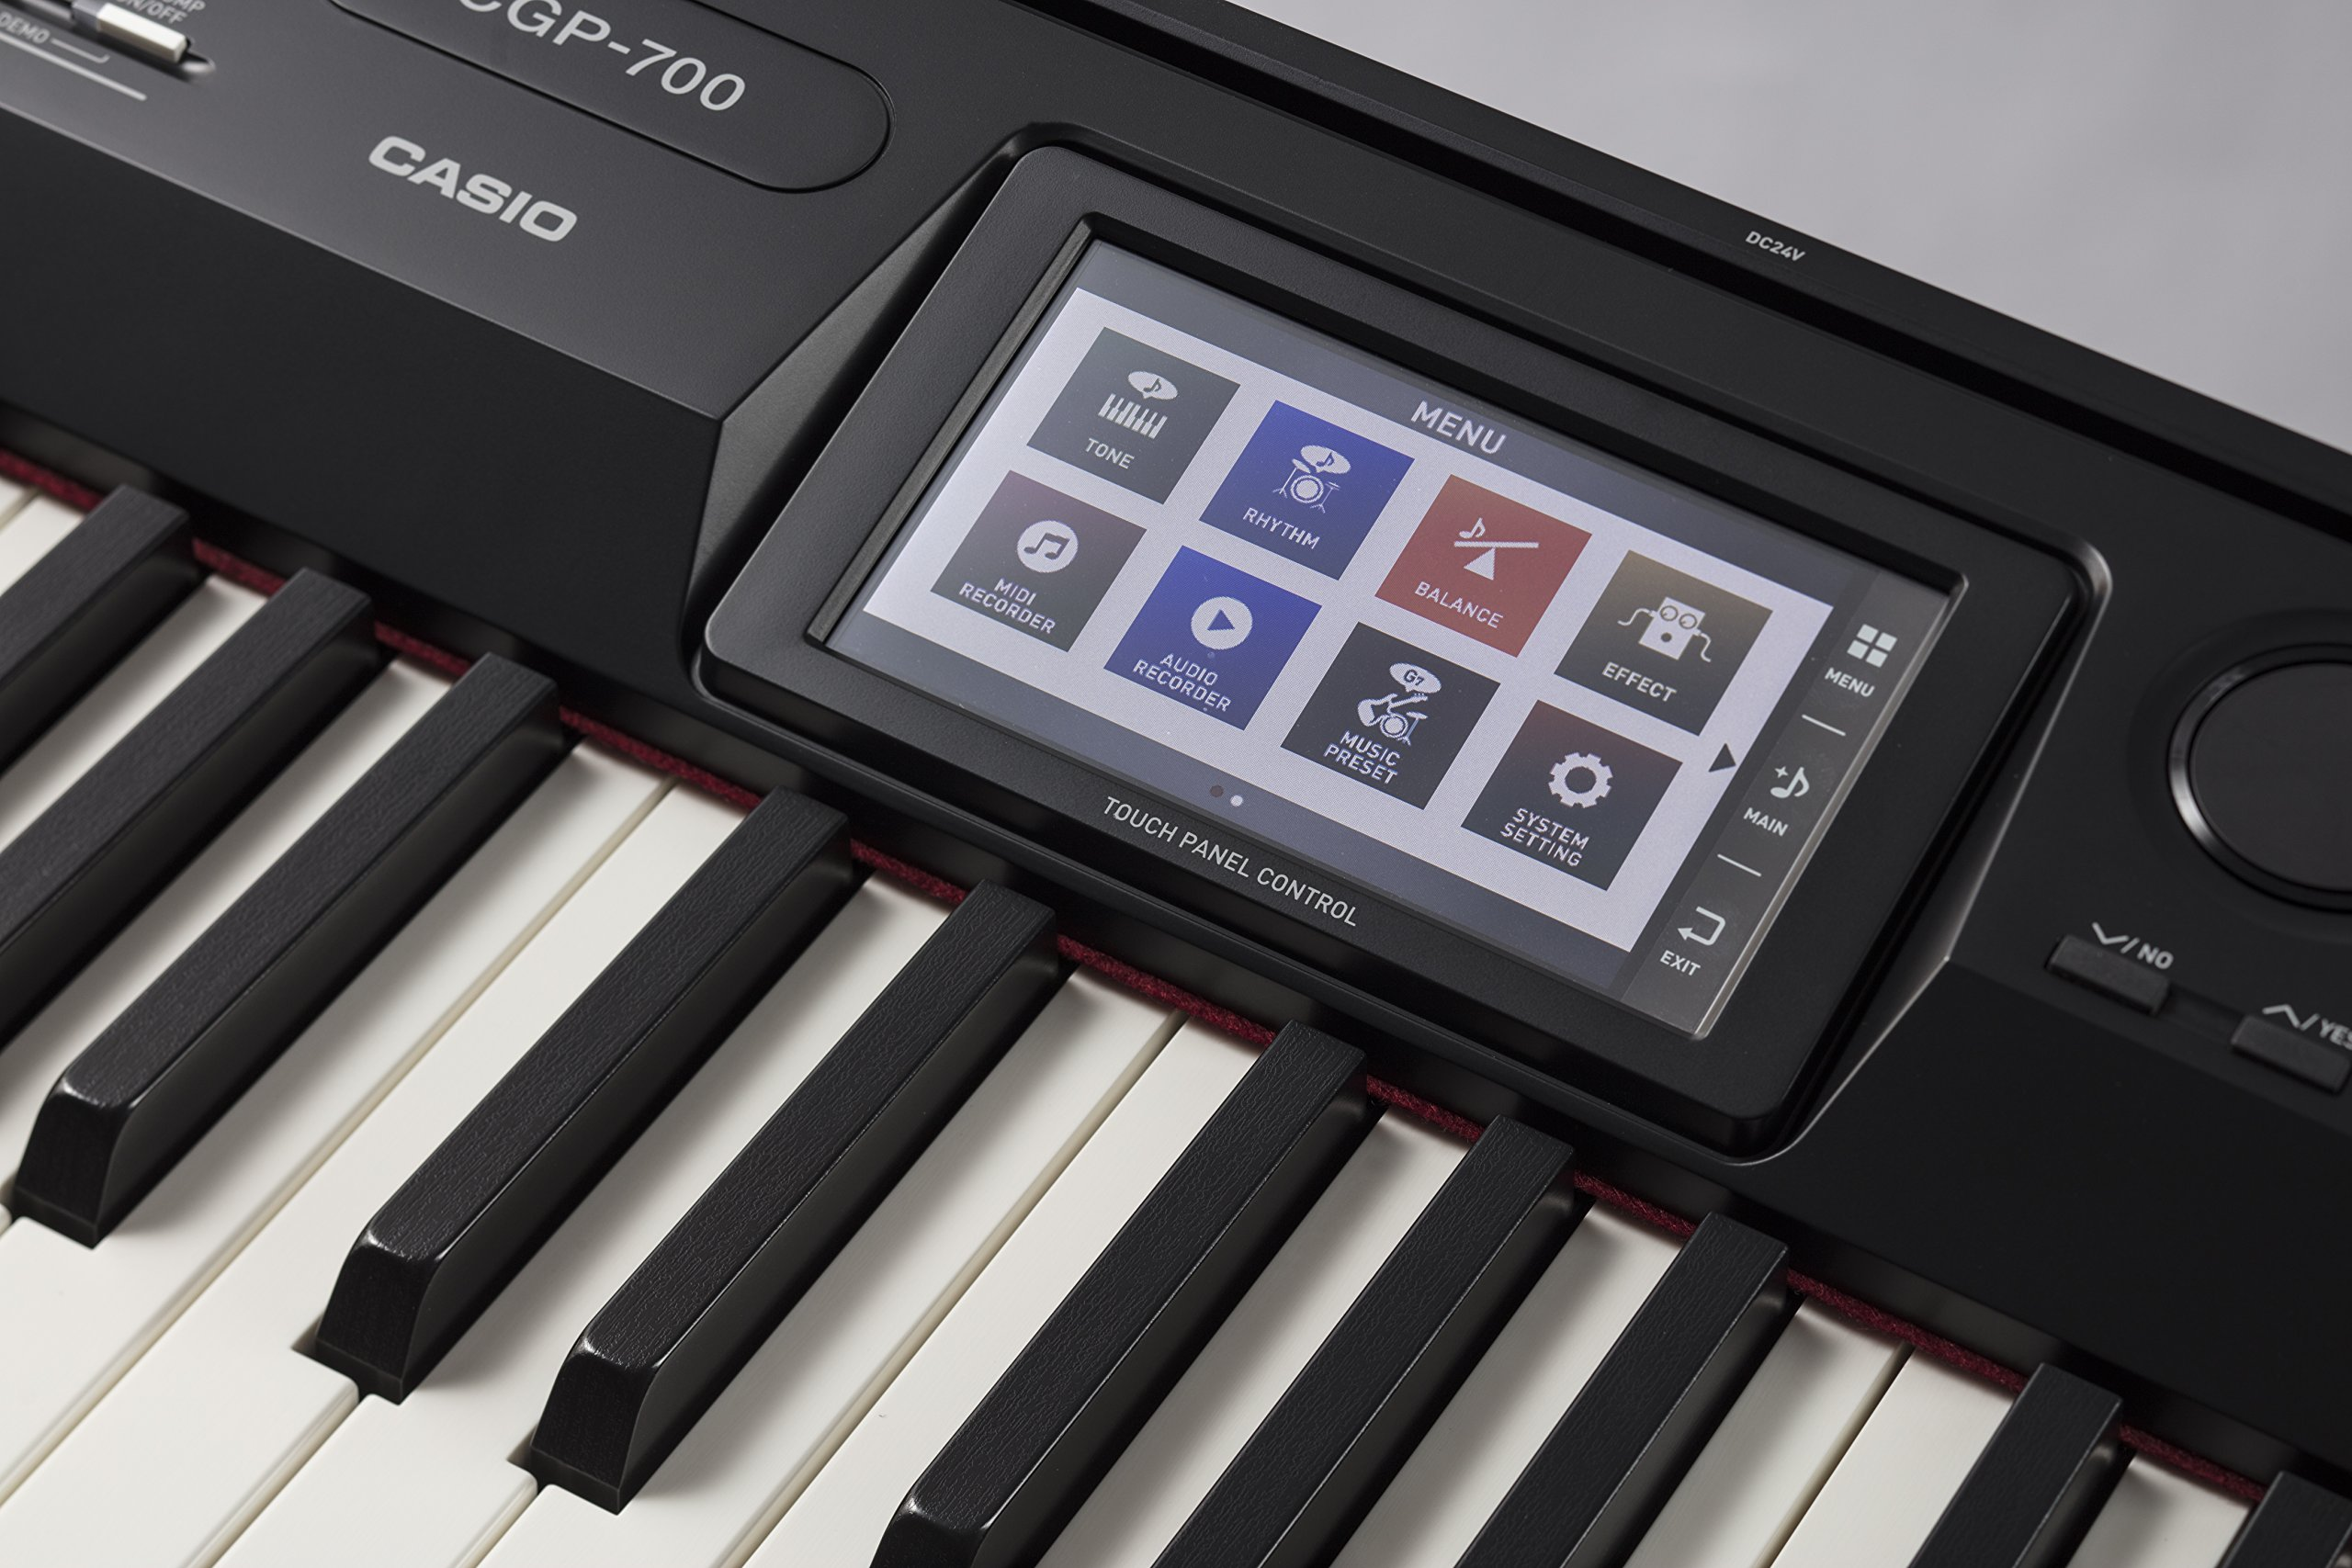 Casio CGP-700BK 88-Key Compact Grand Digital Piano Bundle with Furniture-Style Bench, Dust Cover, Instructional DVD, Instructional Book, Sustain Pedal, and Polishing Cloth - Black by Casio (Image #9)